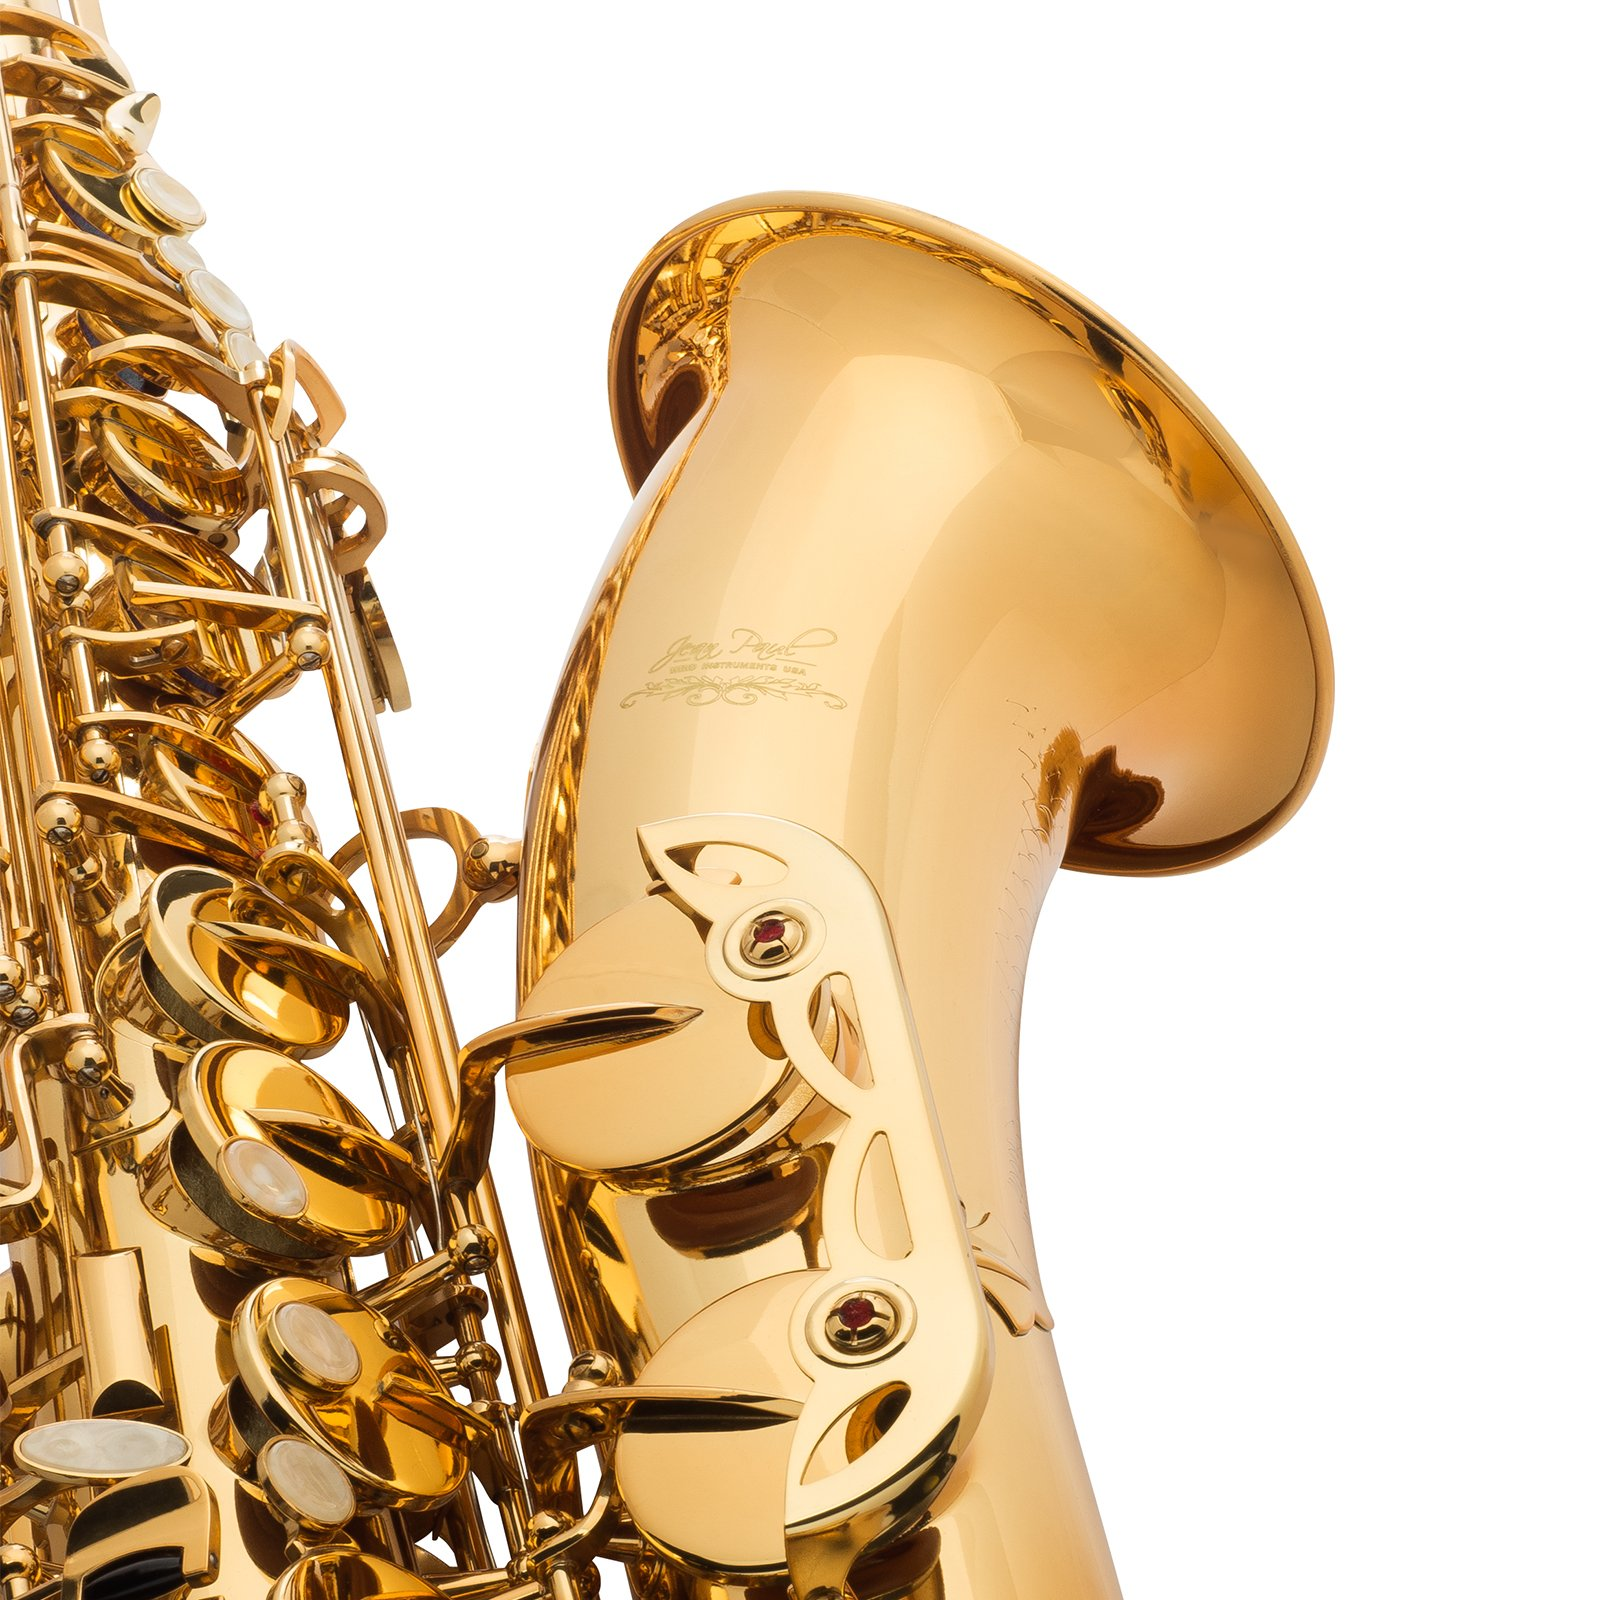 Jean Paul USA TS-400 Tenor Saxophone by Jean Paul USA (Image #3)